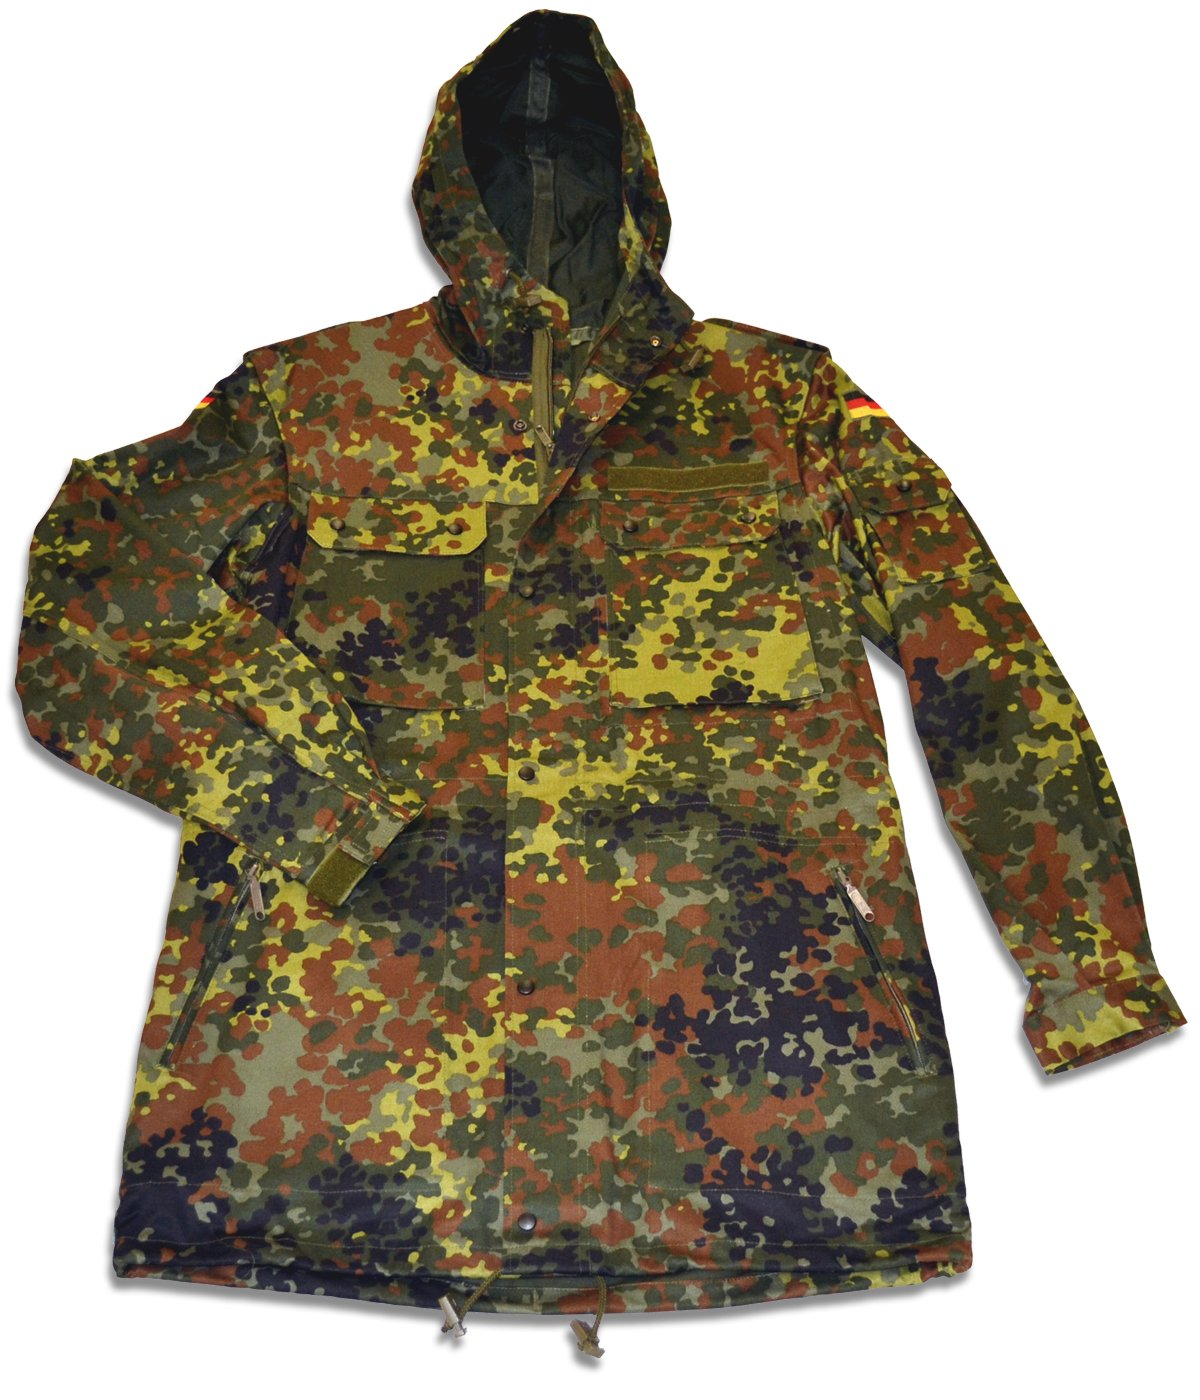 Amazon.com: New German Flecktarn Camouflage Parka - Medium: Sports ...